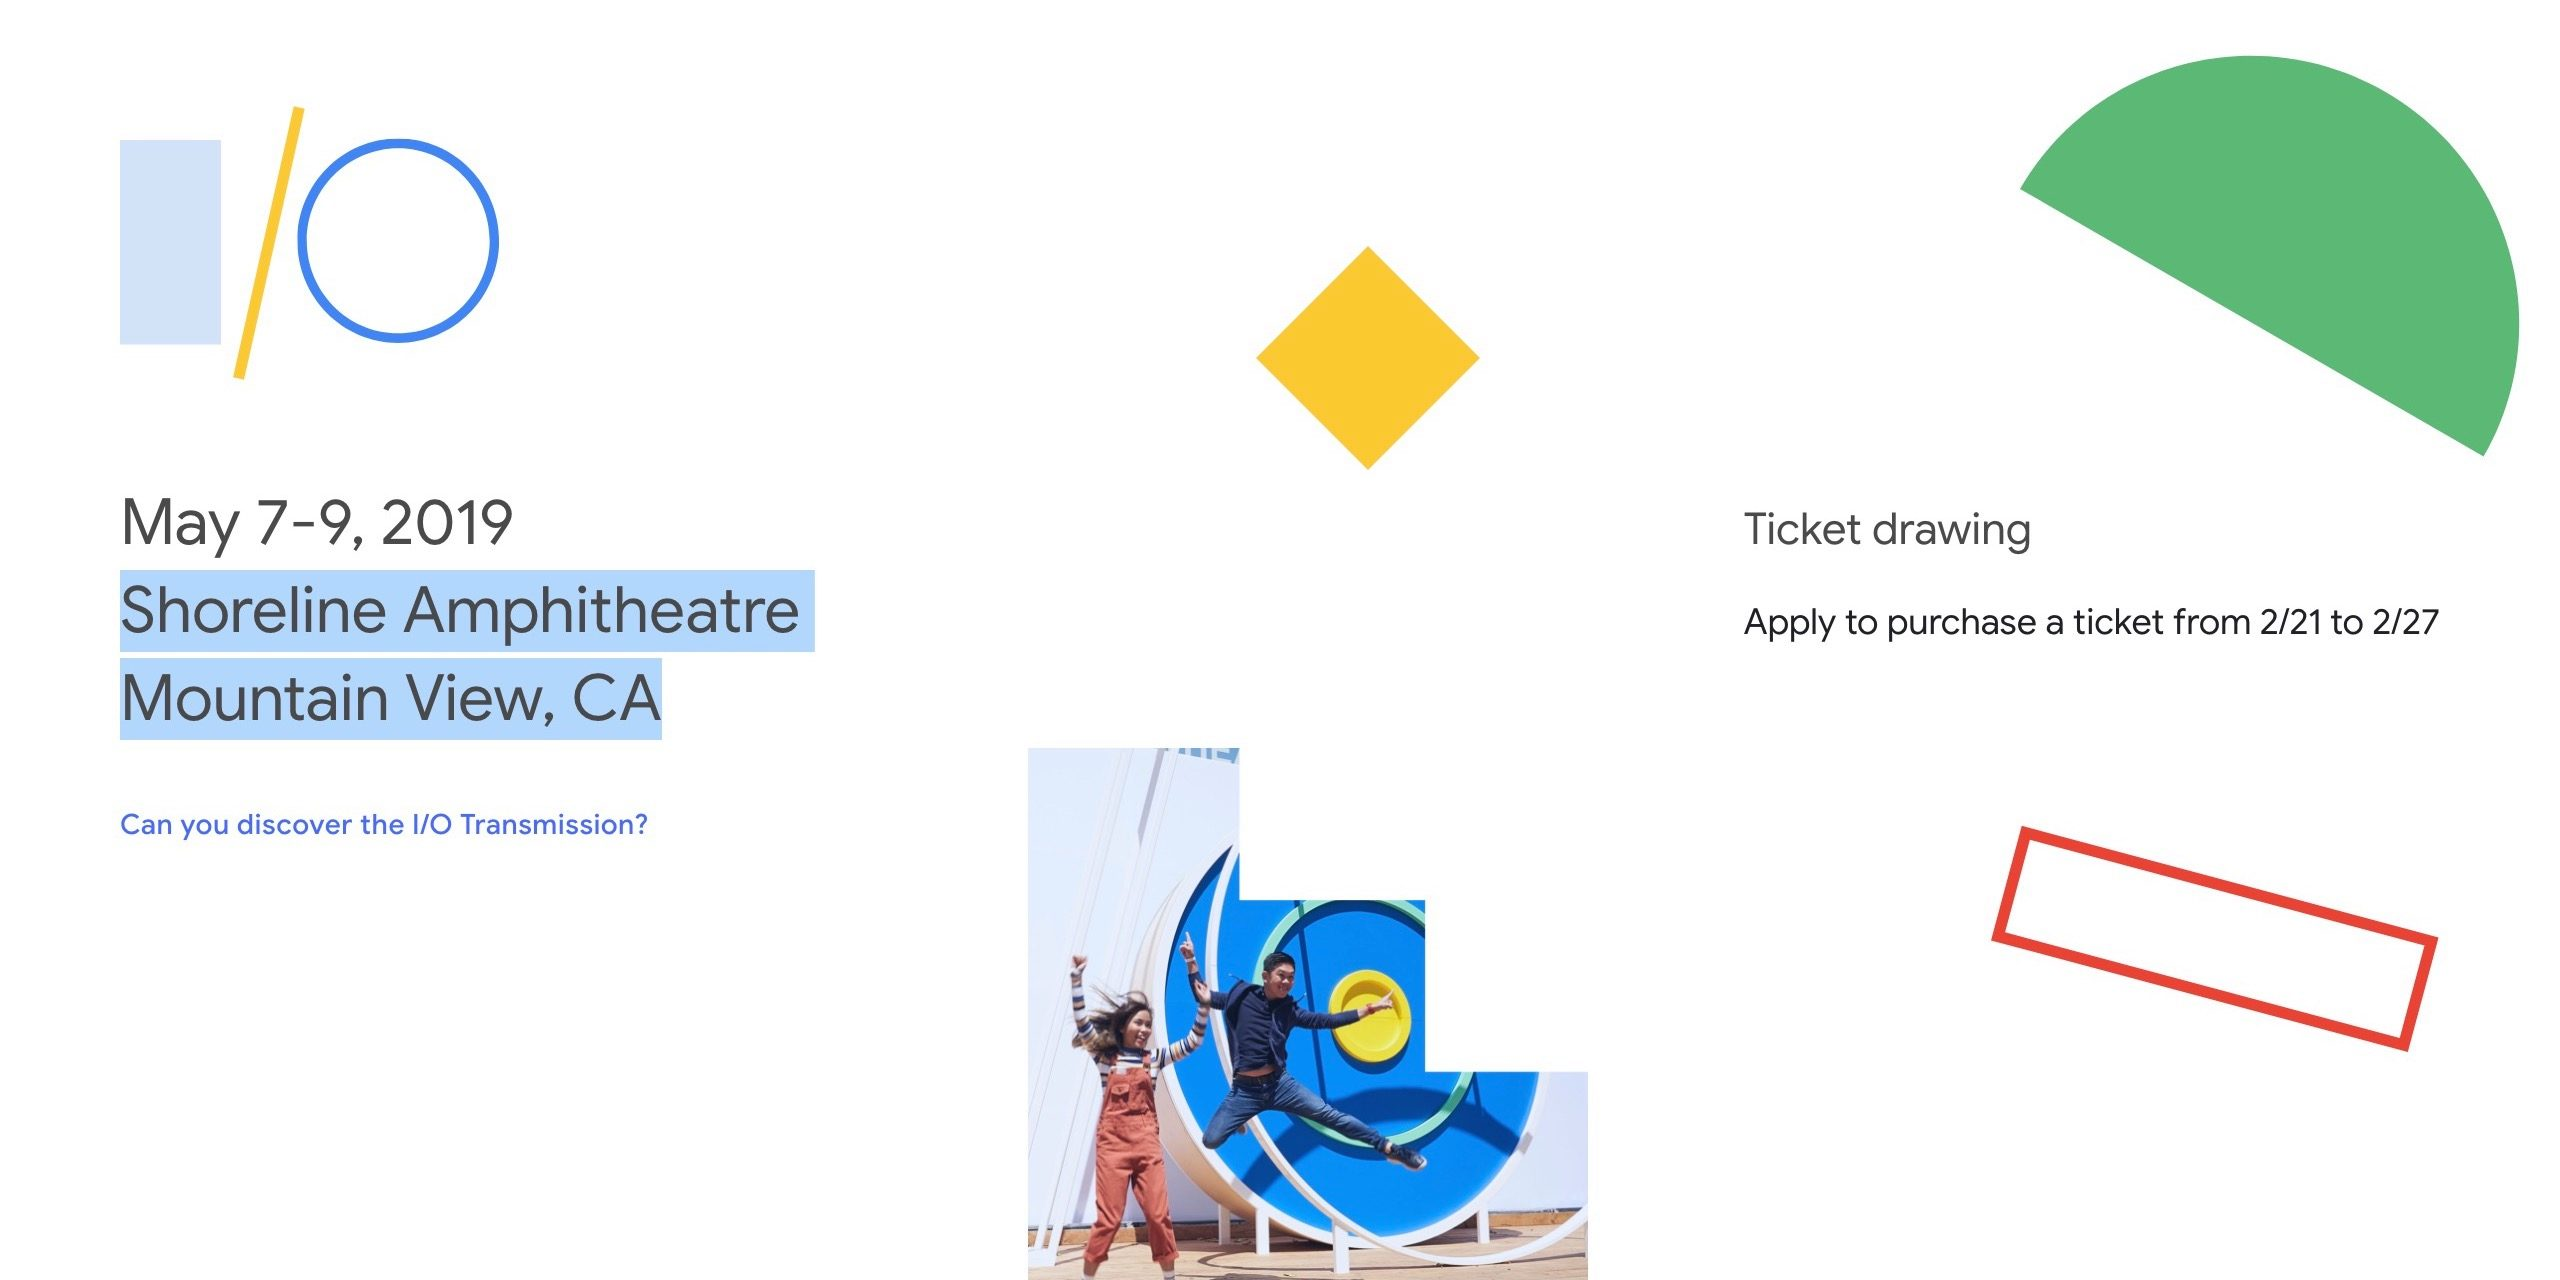 Google I/O 2019 ticket applications run February 21-27 as puzzle remains unsolved